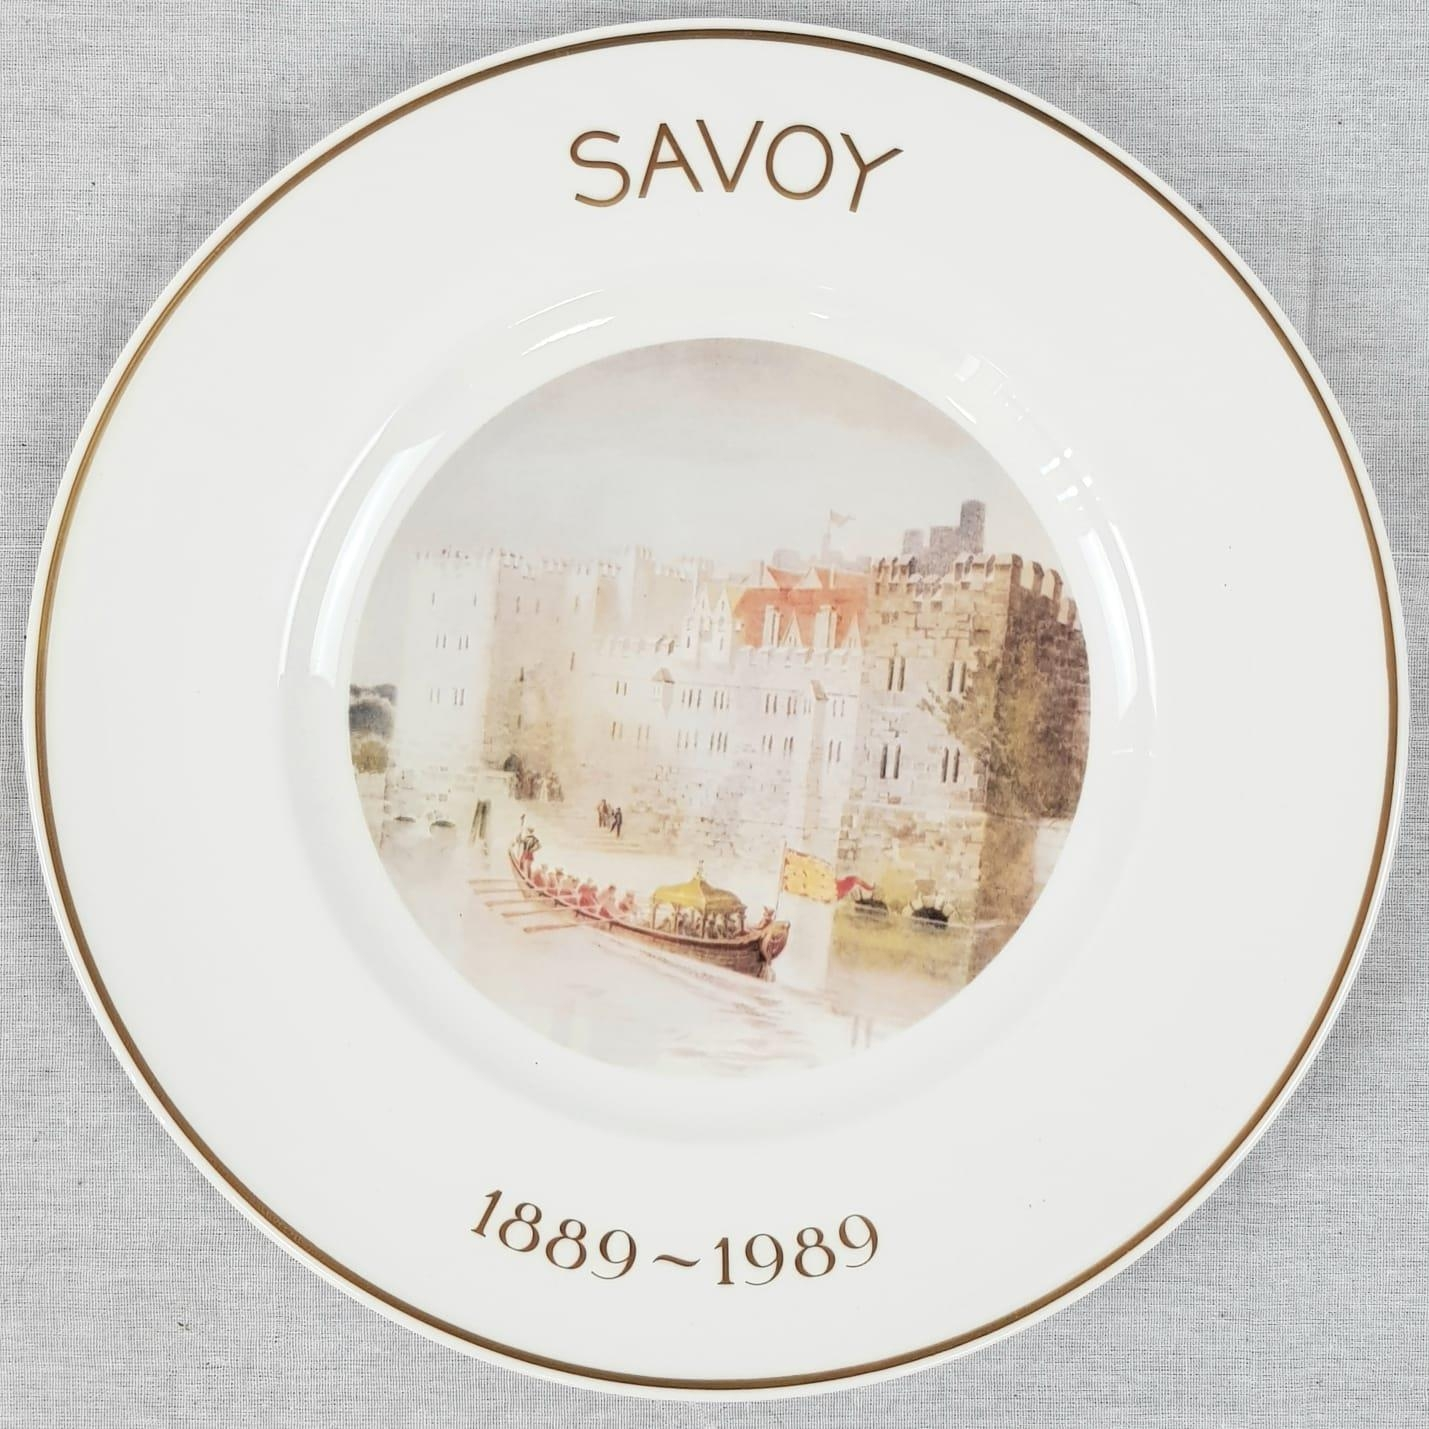 Limited Edition Royal Doulton Savoy Plate. Centenary edition. 1889-1989. 27cm diameter. As New, in